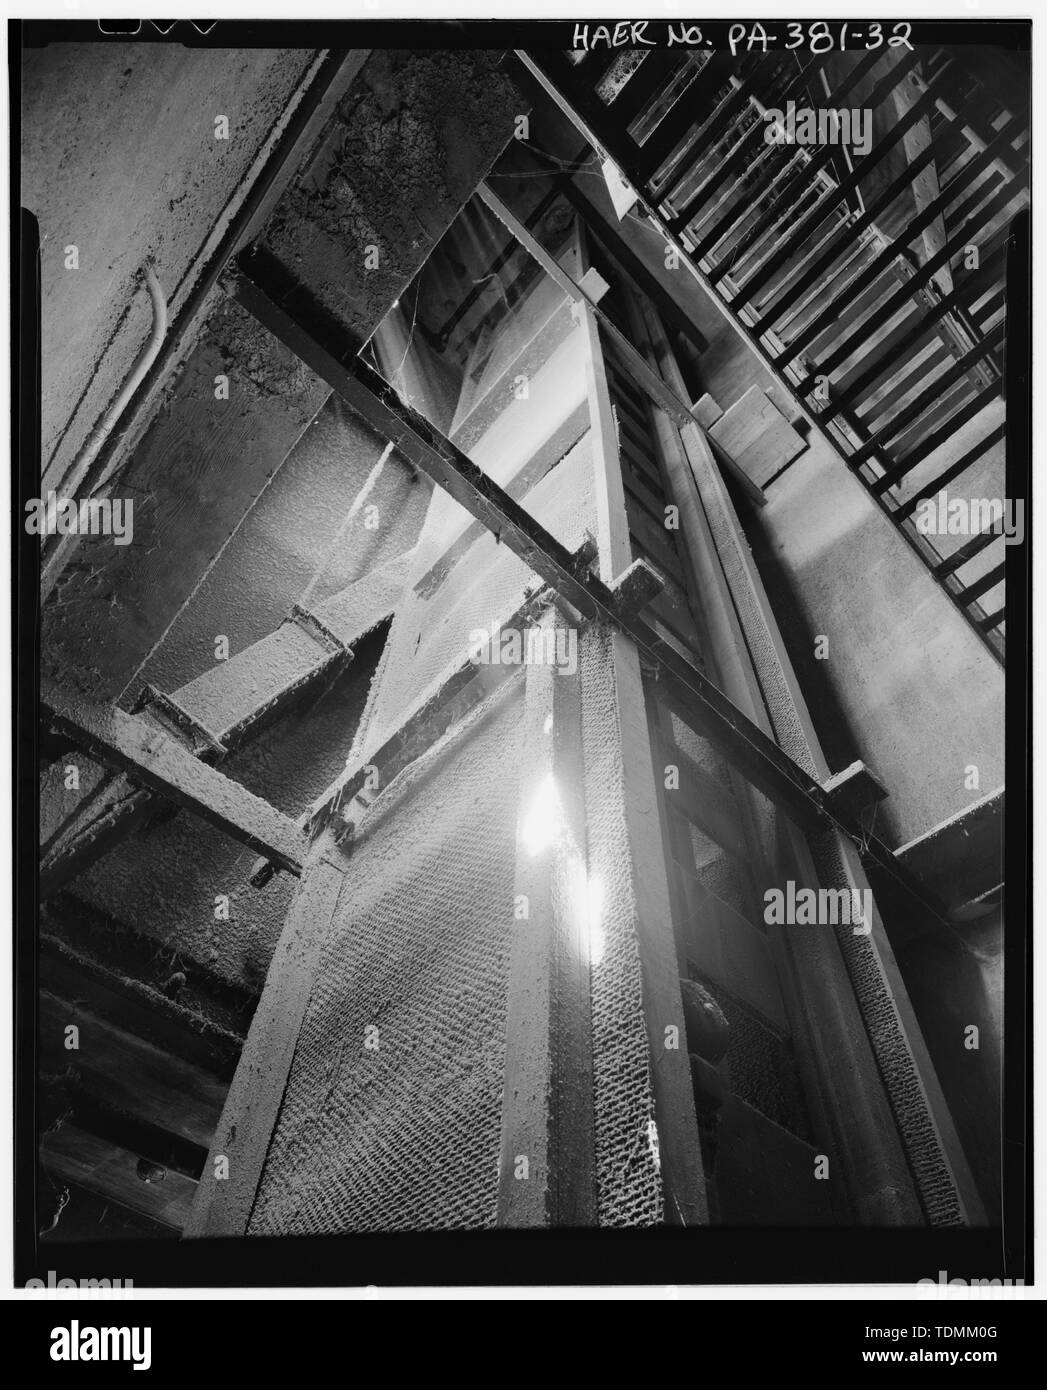 Passageway indicating man lift eliminated after OSHA safety regulations, 1913 elevator, looking west - Stewart Company Grain Elevator, 16 West Carson Street, Pittsburgh, Allegheny County, PA; D. G. Stewart Grain Company; Jesse C. Stewart Company; Union Storage Company; Groomes Construction Company; Pittsburgh-Des Moines Steel Company; R. Munroe and Sons; Webster Manufacturing, Incorporated; Stephens-Adamson Manufacturing Company; Trimble Construction Company; Richardson Scale Company; Standard Metal Products; Pittsburgh, Cincinnati and St. Louis Railway; Christine Davis Consultants, Incorporat - Stock Image